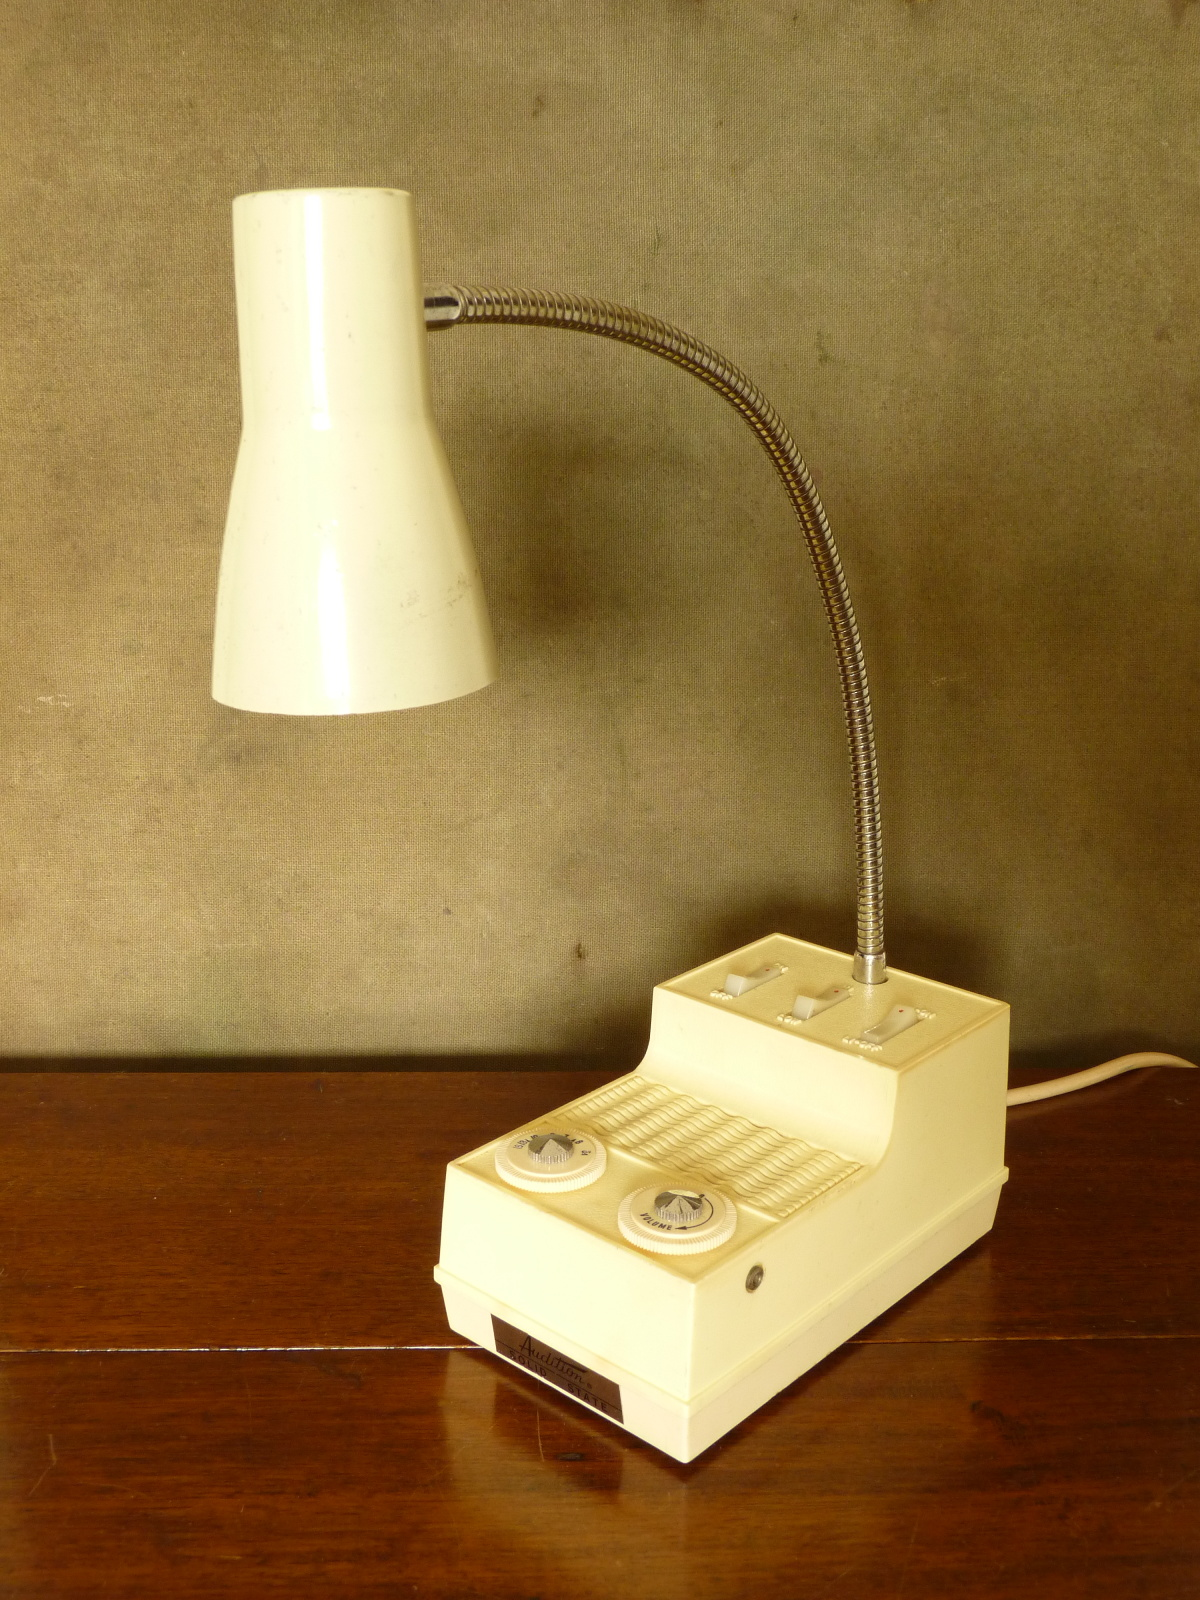 Vintage Solid State AM Radio / Lamp made by Audition